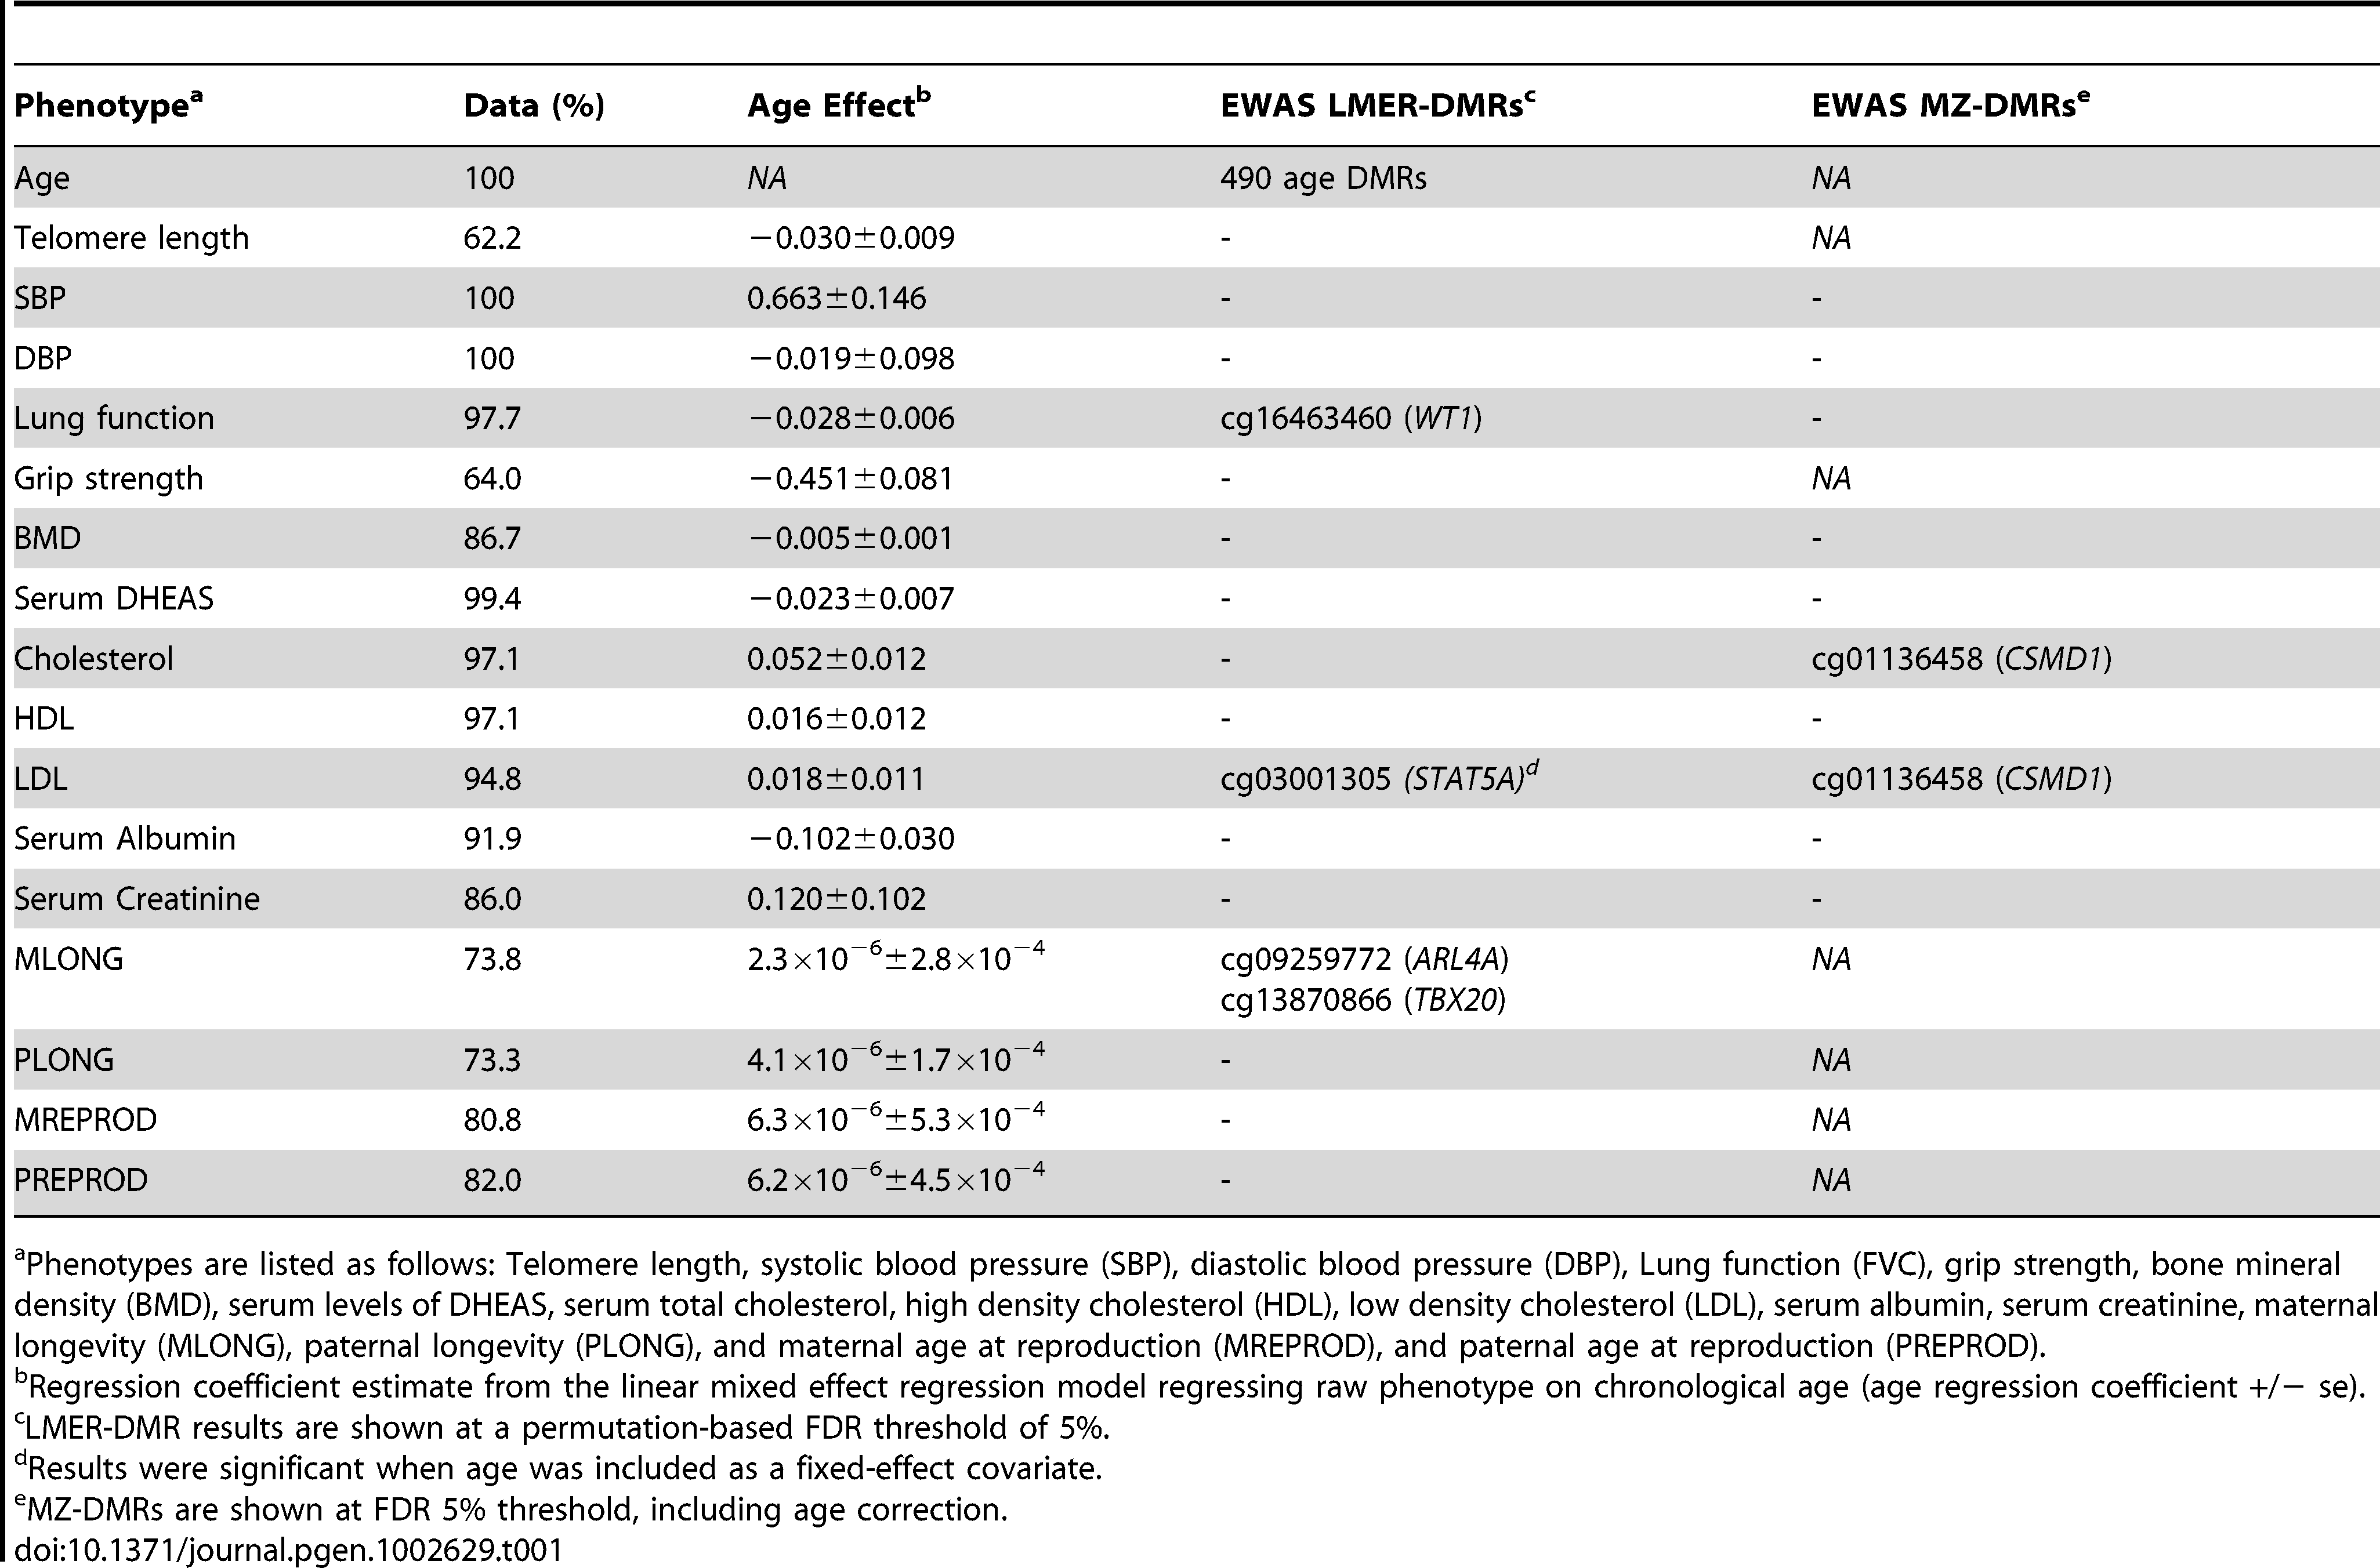 Age and age-related phenotype EWAS DMR results.